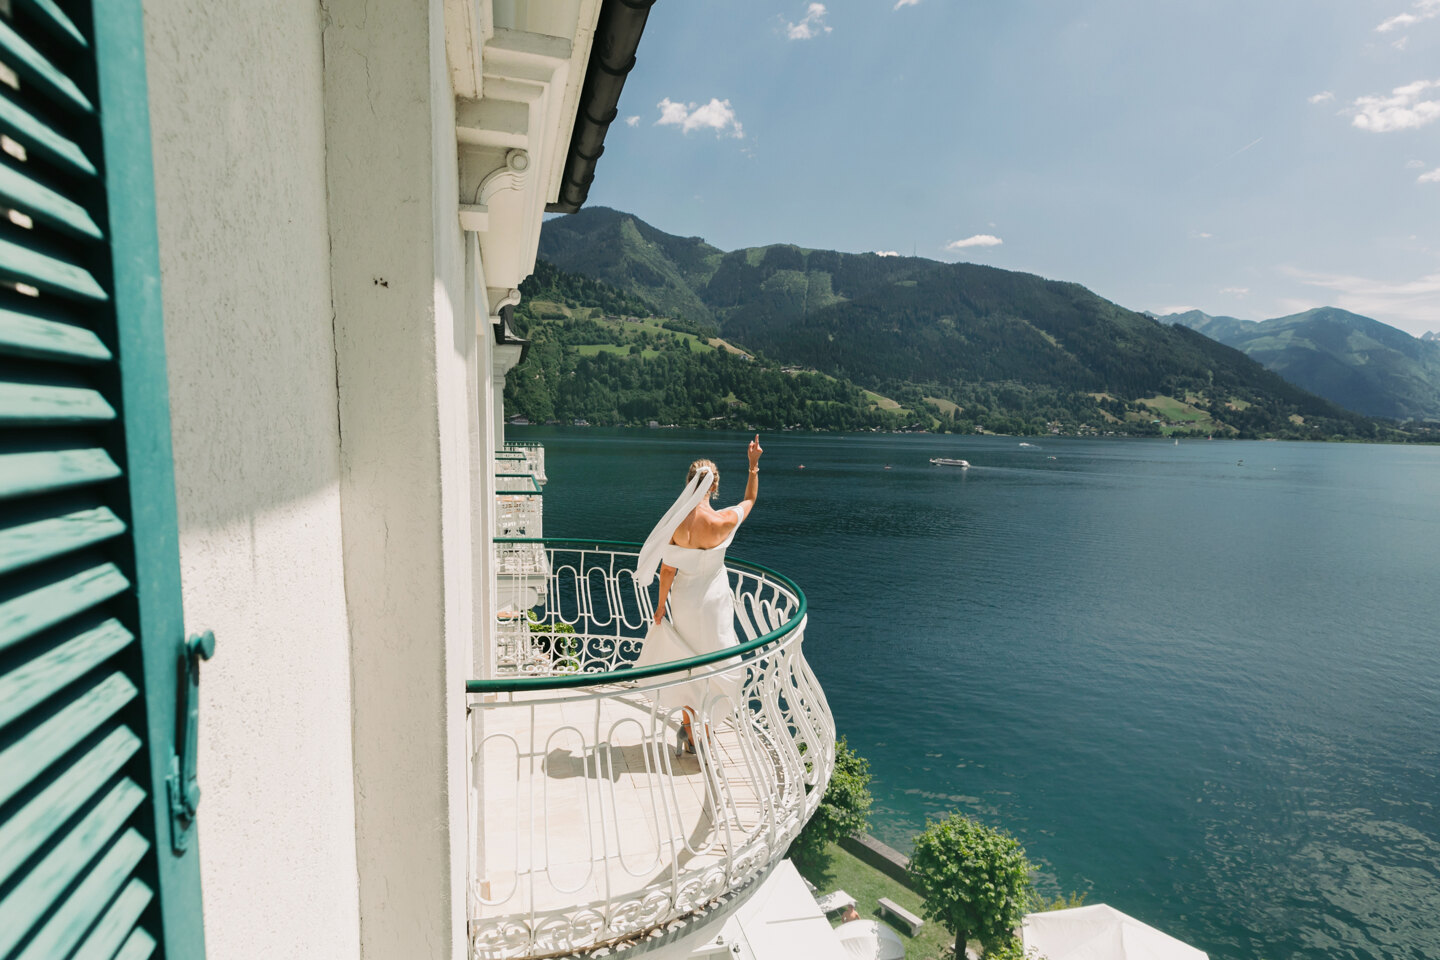 Services of Wedding Photographer in Italy: Bride in a white dress with a veil standing on the balcony of a luxury villa on the shores of Lake Como